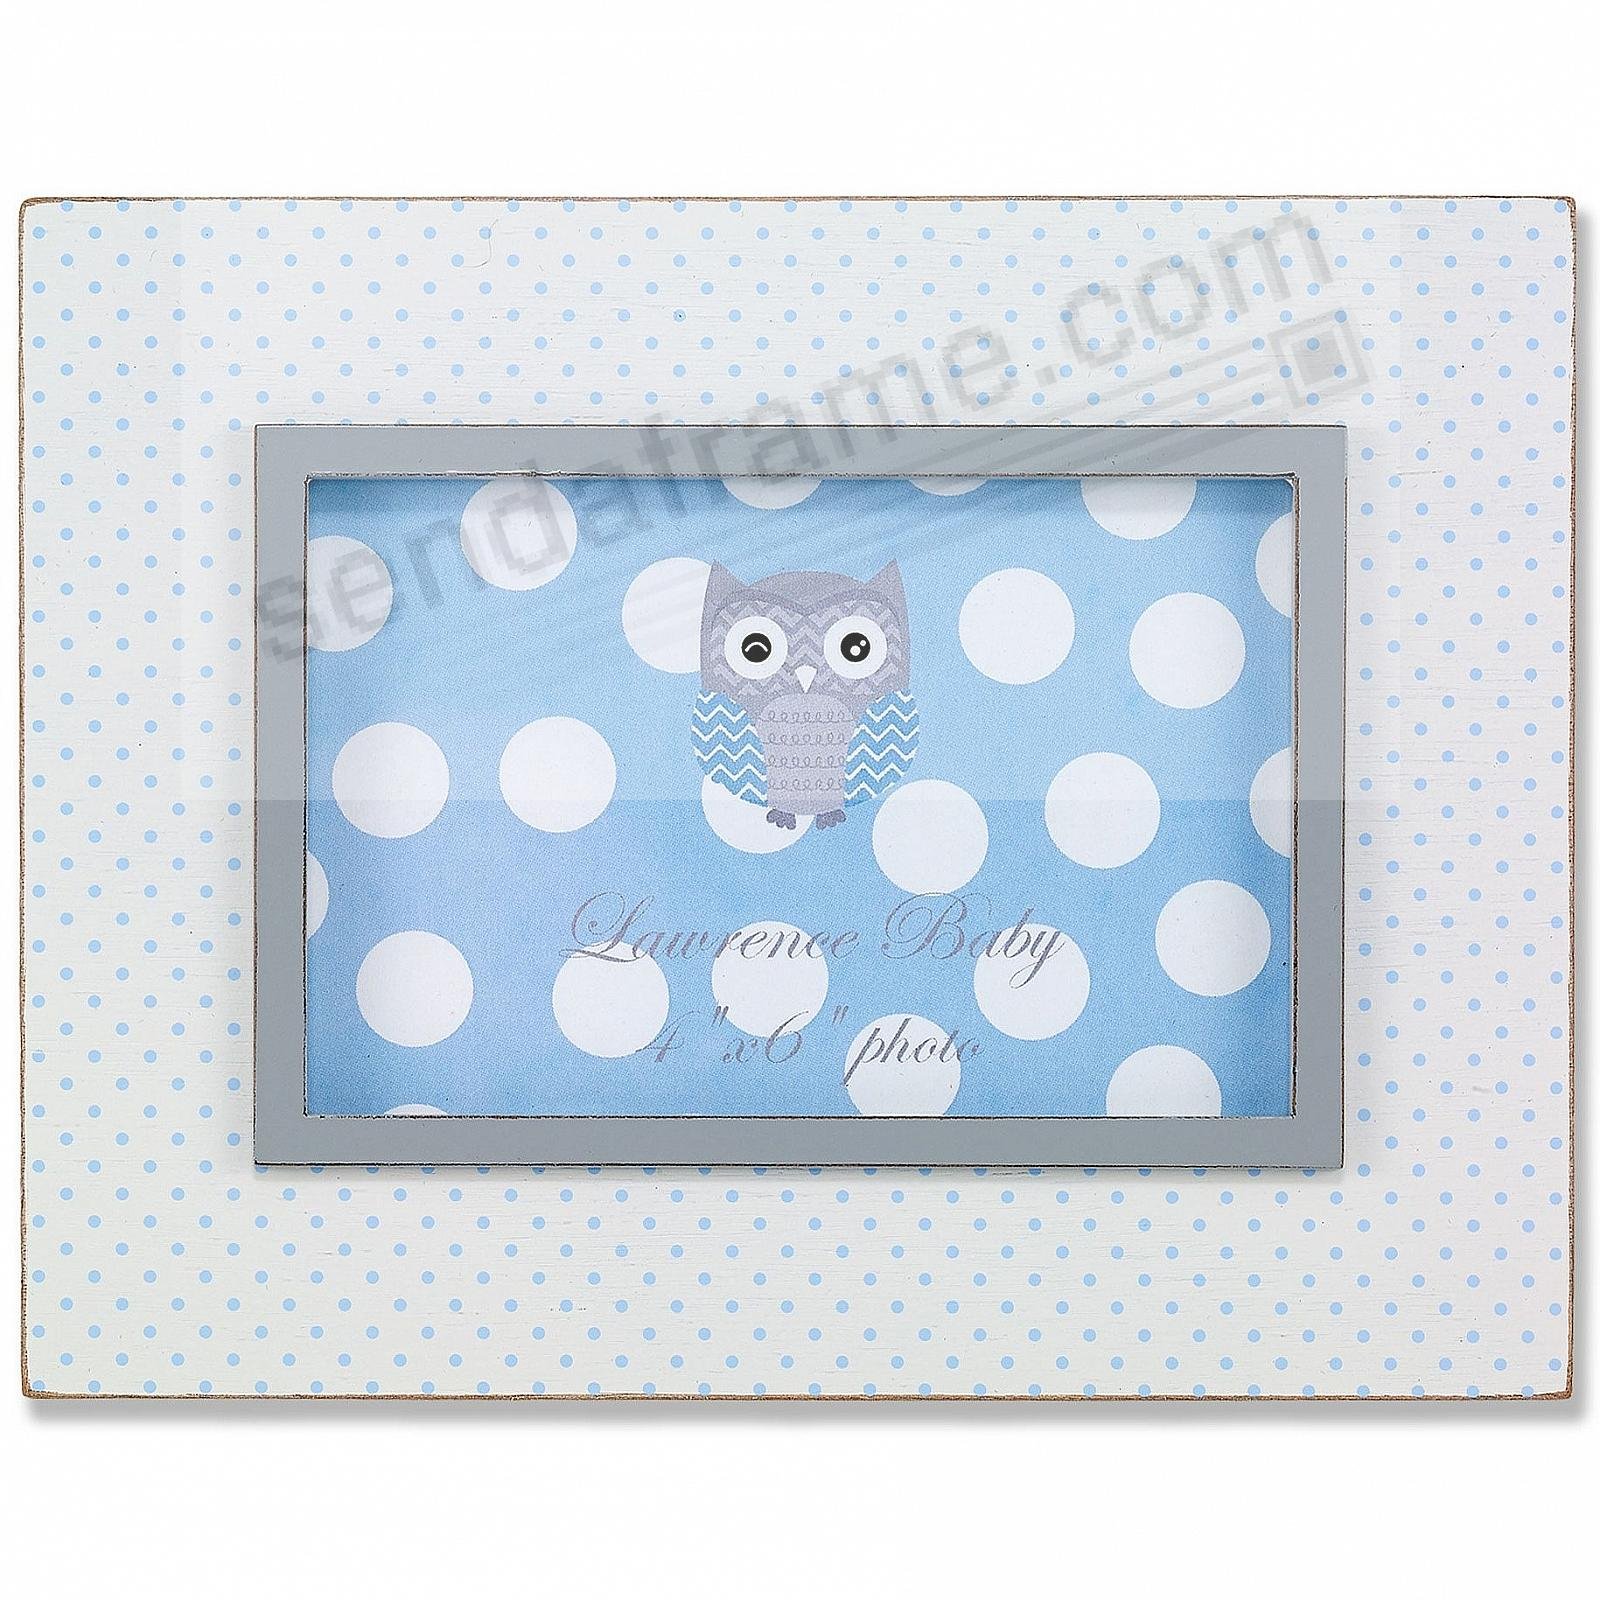 Blue Polka Dot Distressed white frame by Lawrence®